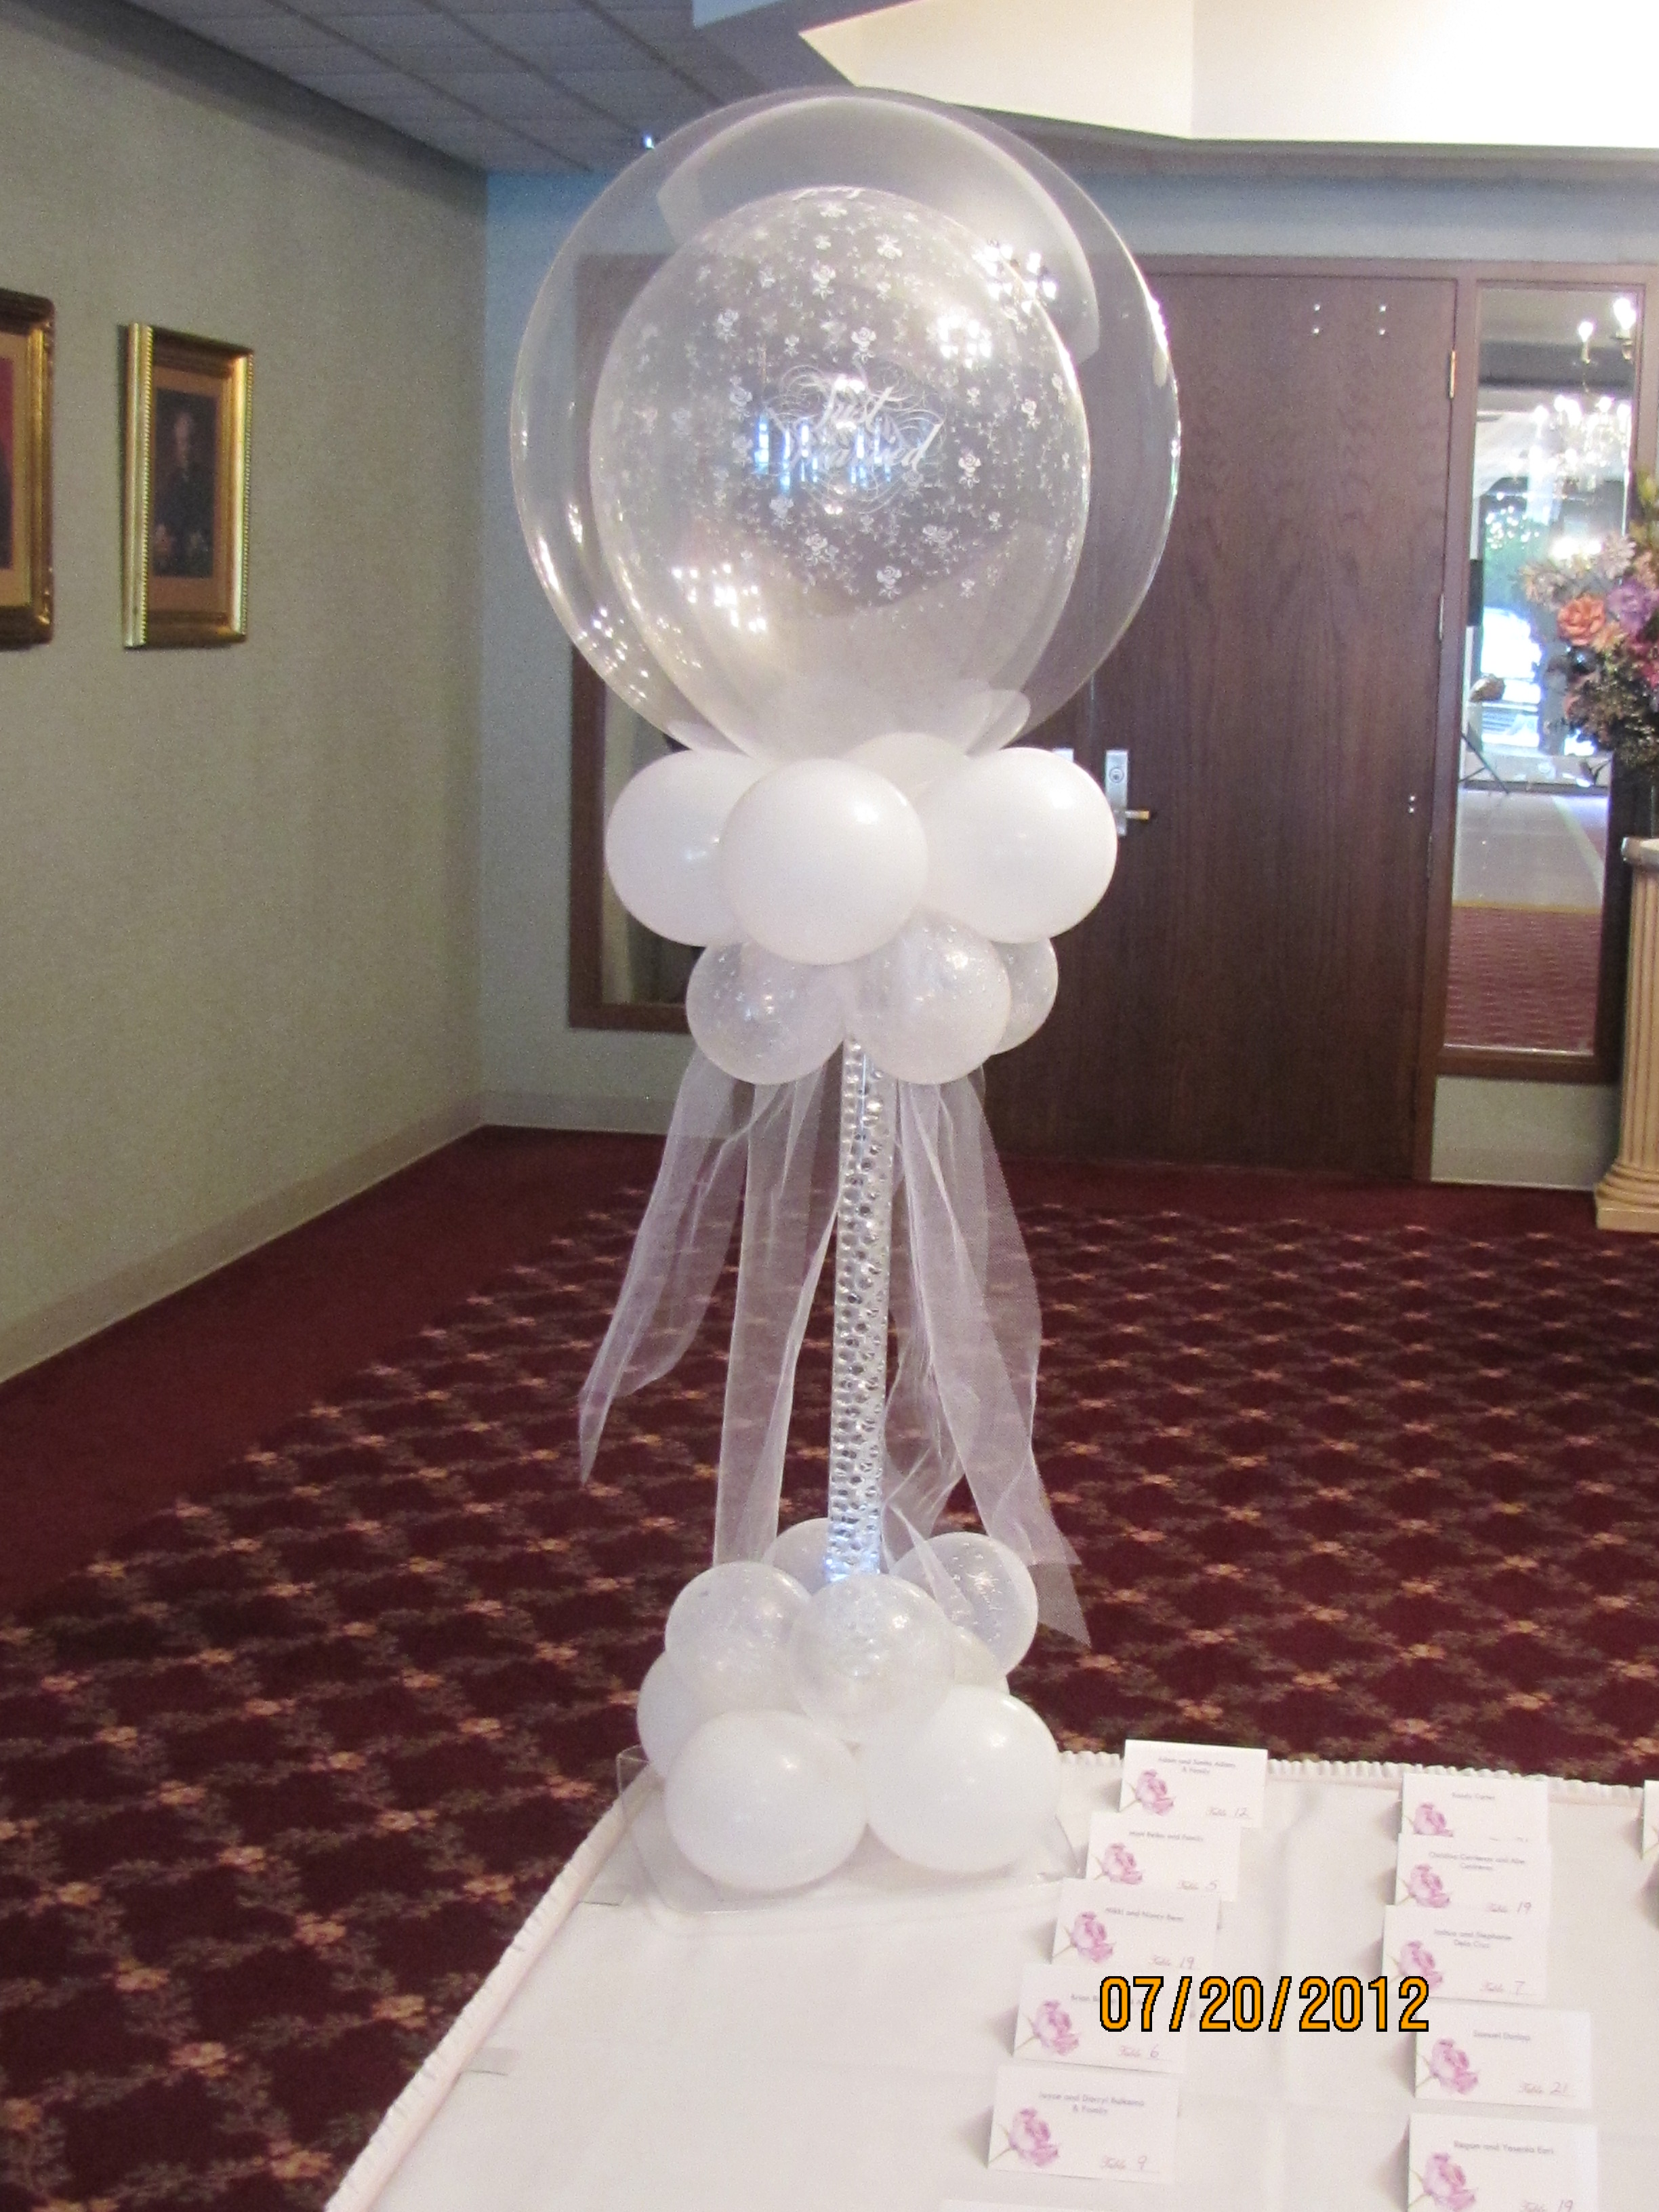 Dyer indiana balloons amytheballoonlady for Balloon decoration making